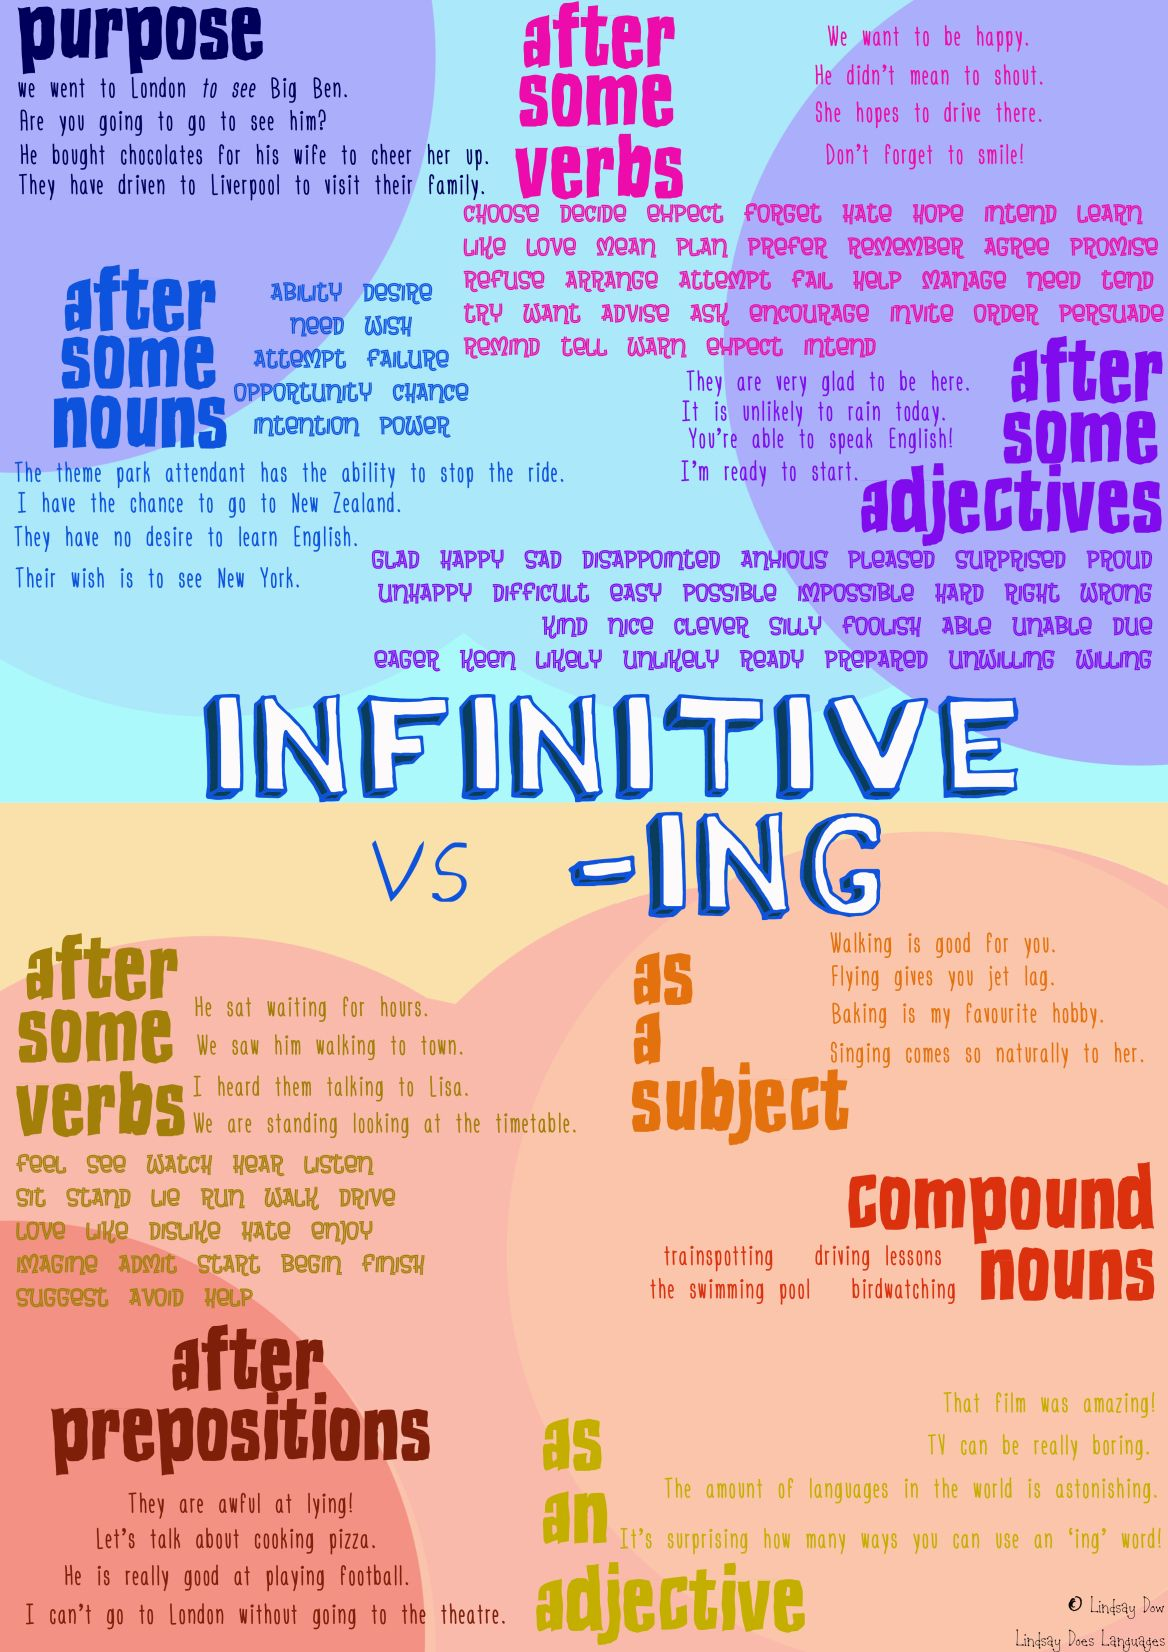 Infinitive Vs Ing Infographic2